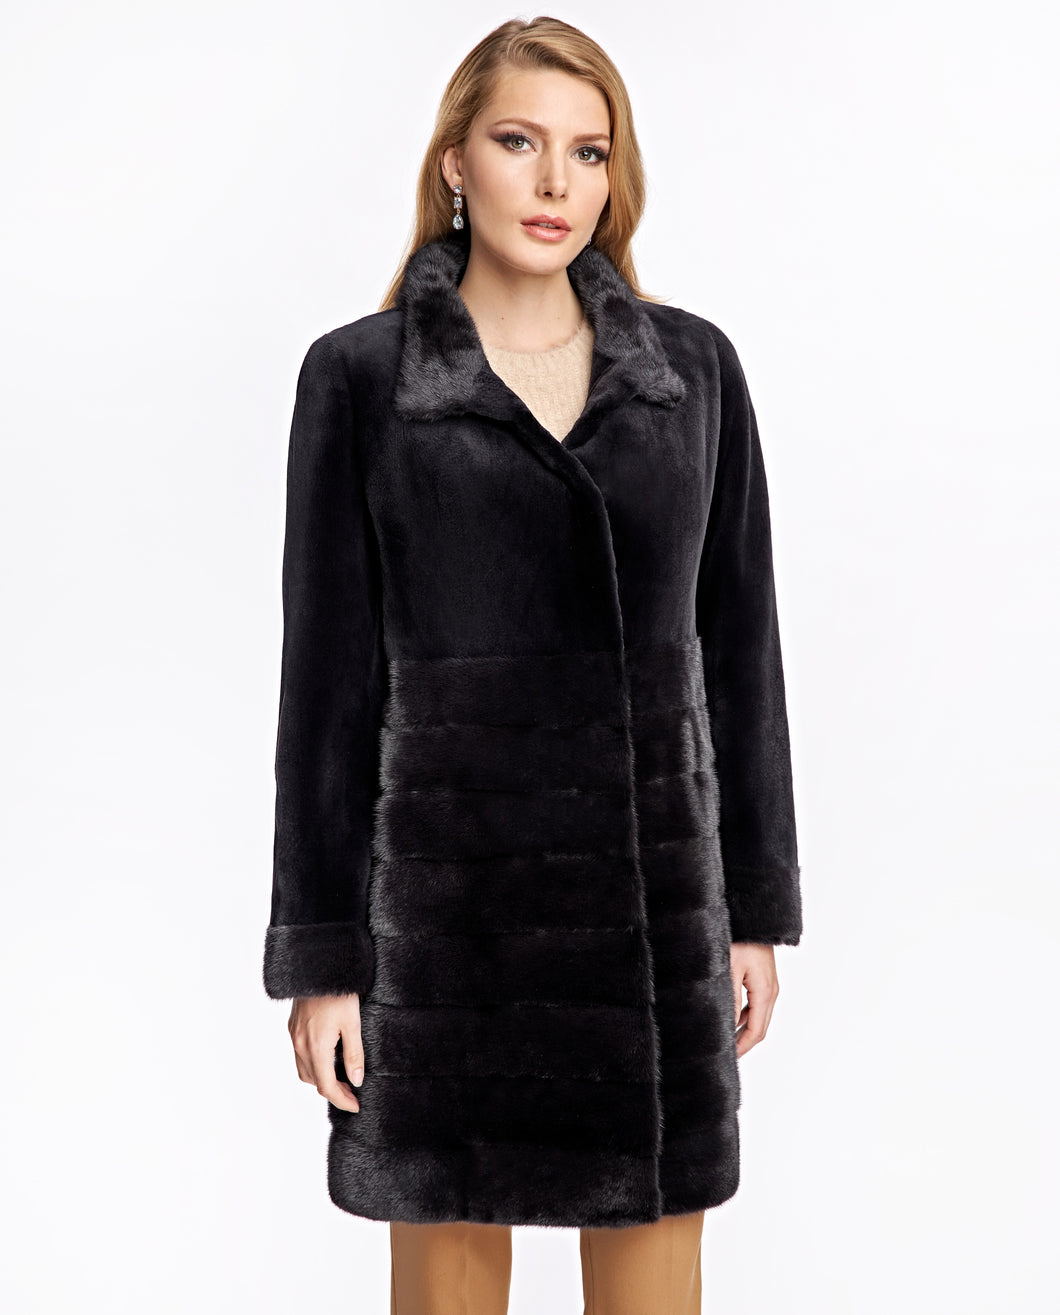 Sheared & Long Hair Mink Coat